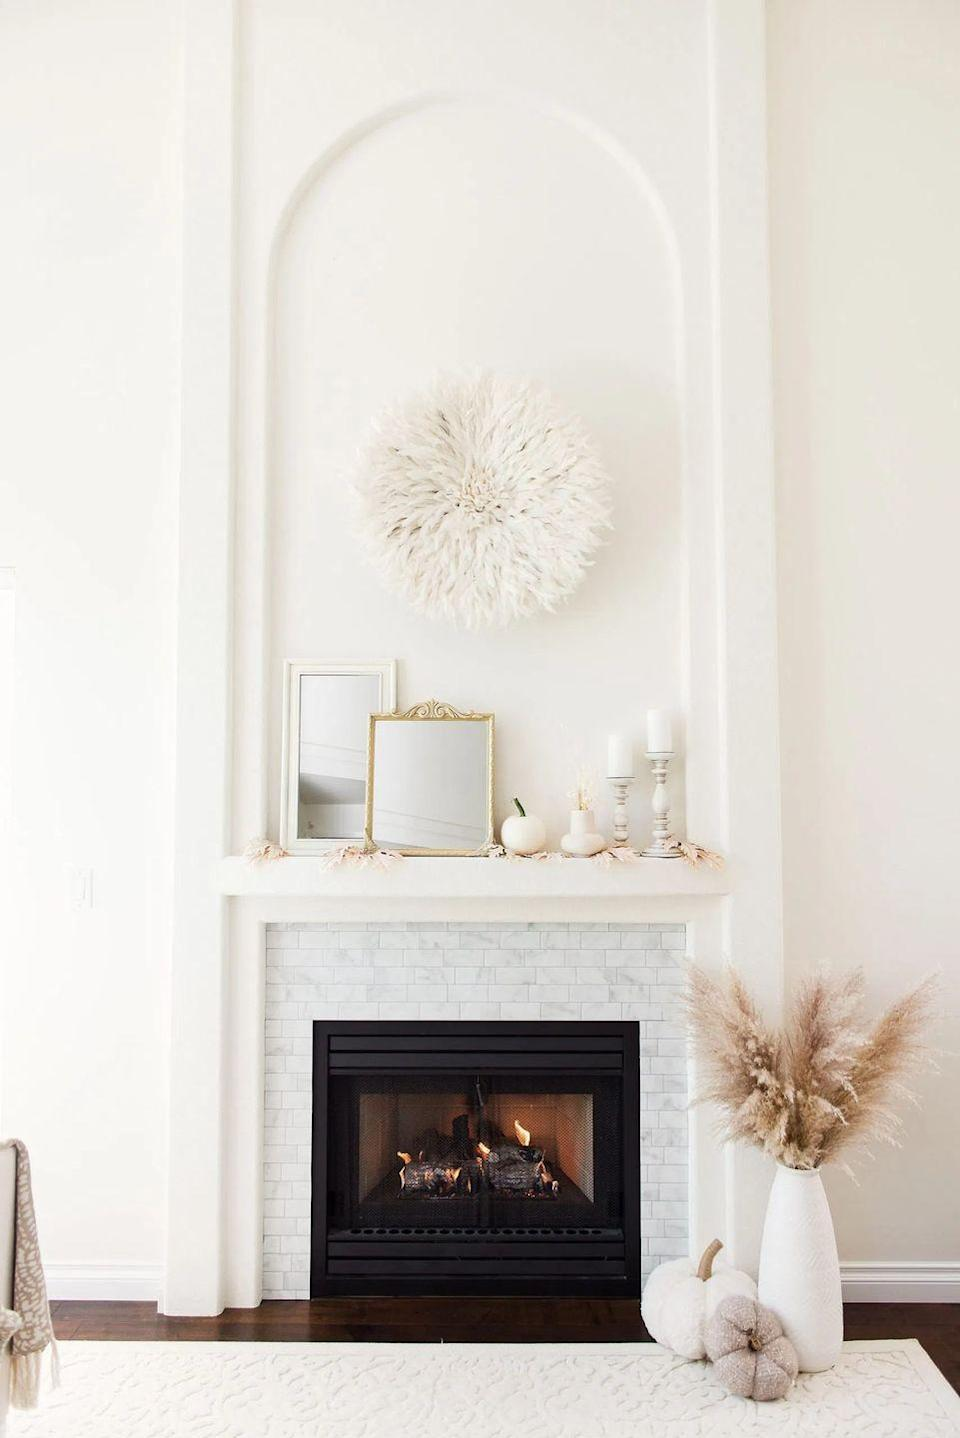 """<p>In a gold hue, this spray-painted mirror will certainly bring some warmth and glam to your fall decorations. Make it look extra-fancy with wood appliqués at the corners. </p><p><strong>Get the tutorial at <a href=""""https://lifeisbetterathome.com/2020/09/16/elegant-fall-mantel-with-neutral-accents/"""" rel=""""nofollow noopener"""" target=""""_blank"""" data-ylk=""""slk:Judy Dill"""" class=""""link rapid-noclick-resp"""">Judy Dill</a>.</strong></p><p><a class=""""link rapid-noclick-resp"""" href=""""https://go.redirectingat.com?id=74968X1596630&url=https%3A%2F%2Fwww.walmart.com%2Fip%2F4pcs-set-Wood-Carved-Corner-Onlay-Applique-Unpainted-Frame-Cupboard-Cabinet-Decal-For-Home-Furniture-Decor-Craft-8x8cm%2F830107645&sref=https%3A%2F%2Fwww.thepioneerwoman.com%2Fhome-lifestyle%2Fcrafts-diy%2Fg36891743%2Ffall-mantel-decorations%2F"""" rel=""""nofollow noopener"""" target=""""_blank"""" data-ylk=""""slk:SHOP WOOD APPLIQUÉS"""">SHOP WOOD APPLIQUÉS</a></p>"""